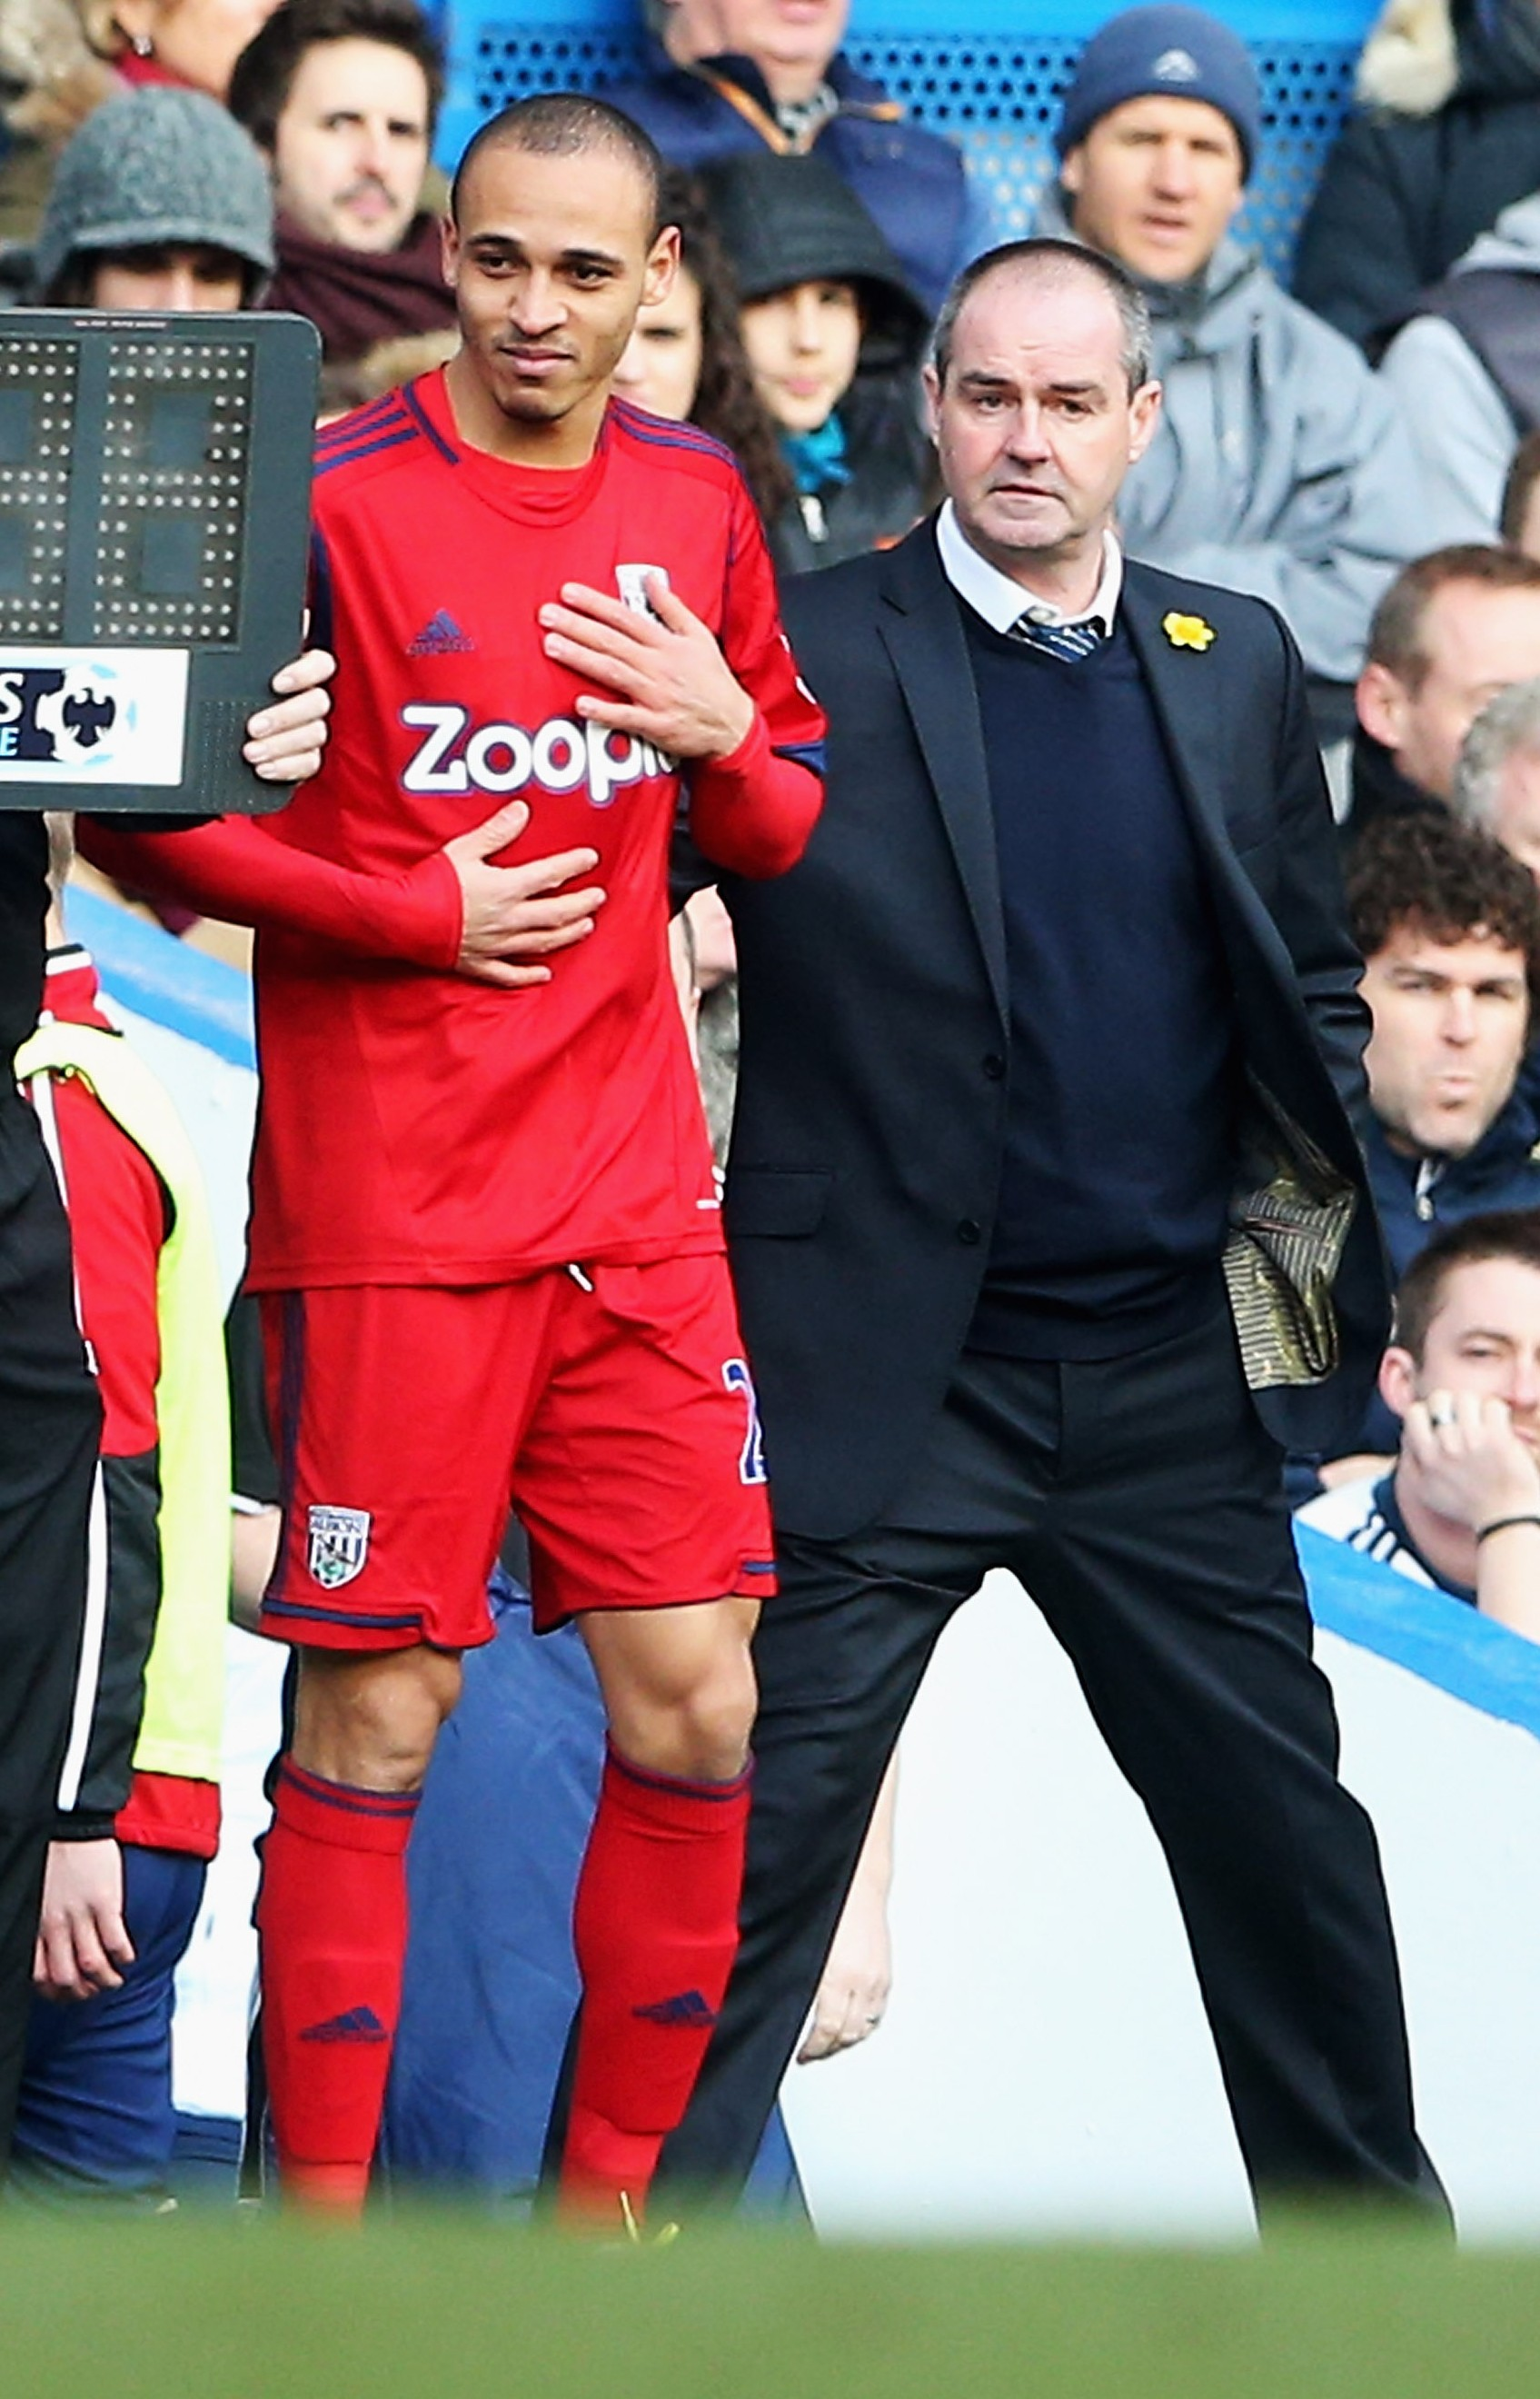 Steve Clarke 'learning Twitter' to try and end Peter Odemwingie's rants